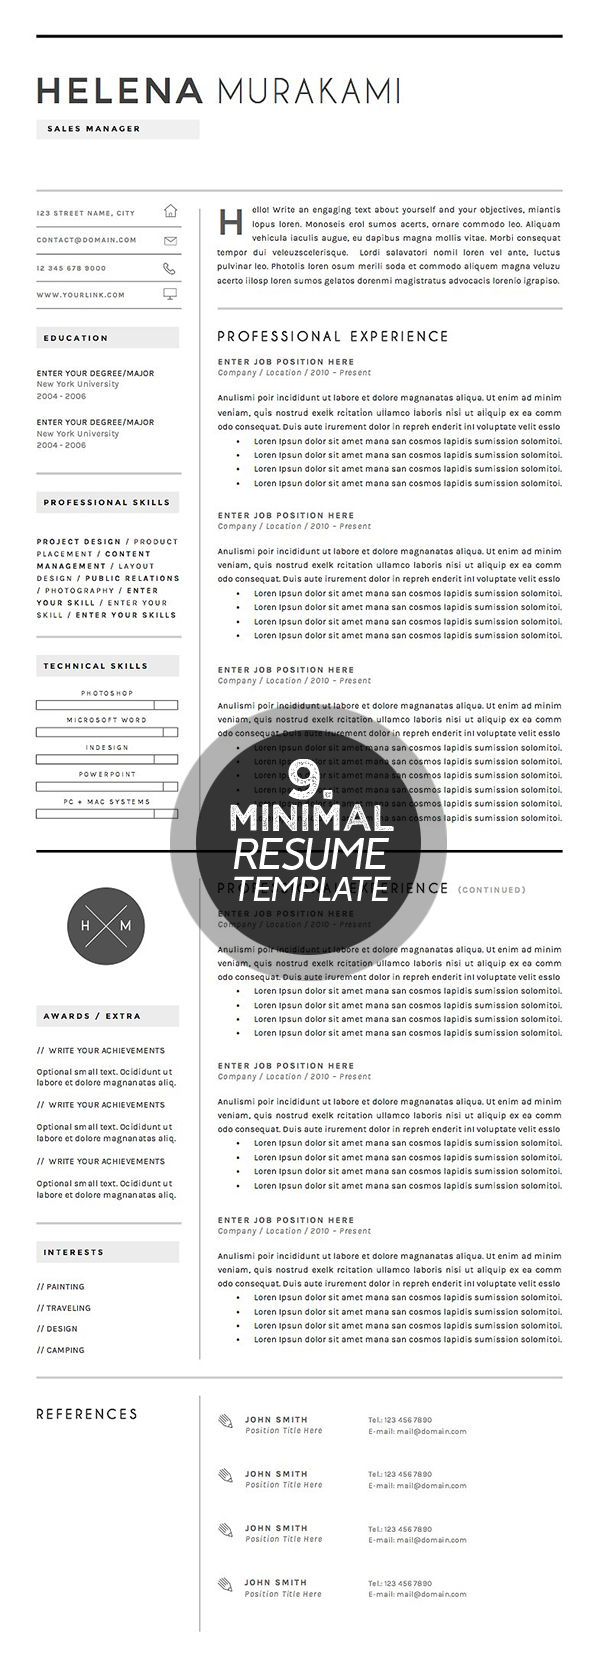 Resume Template 4 pages | Simplifier